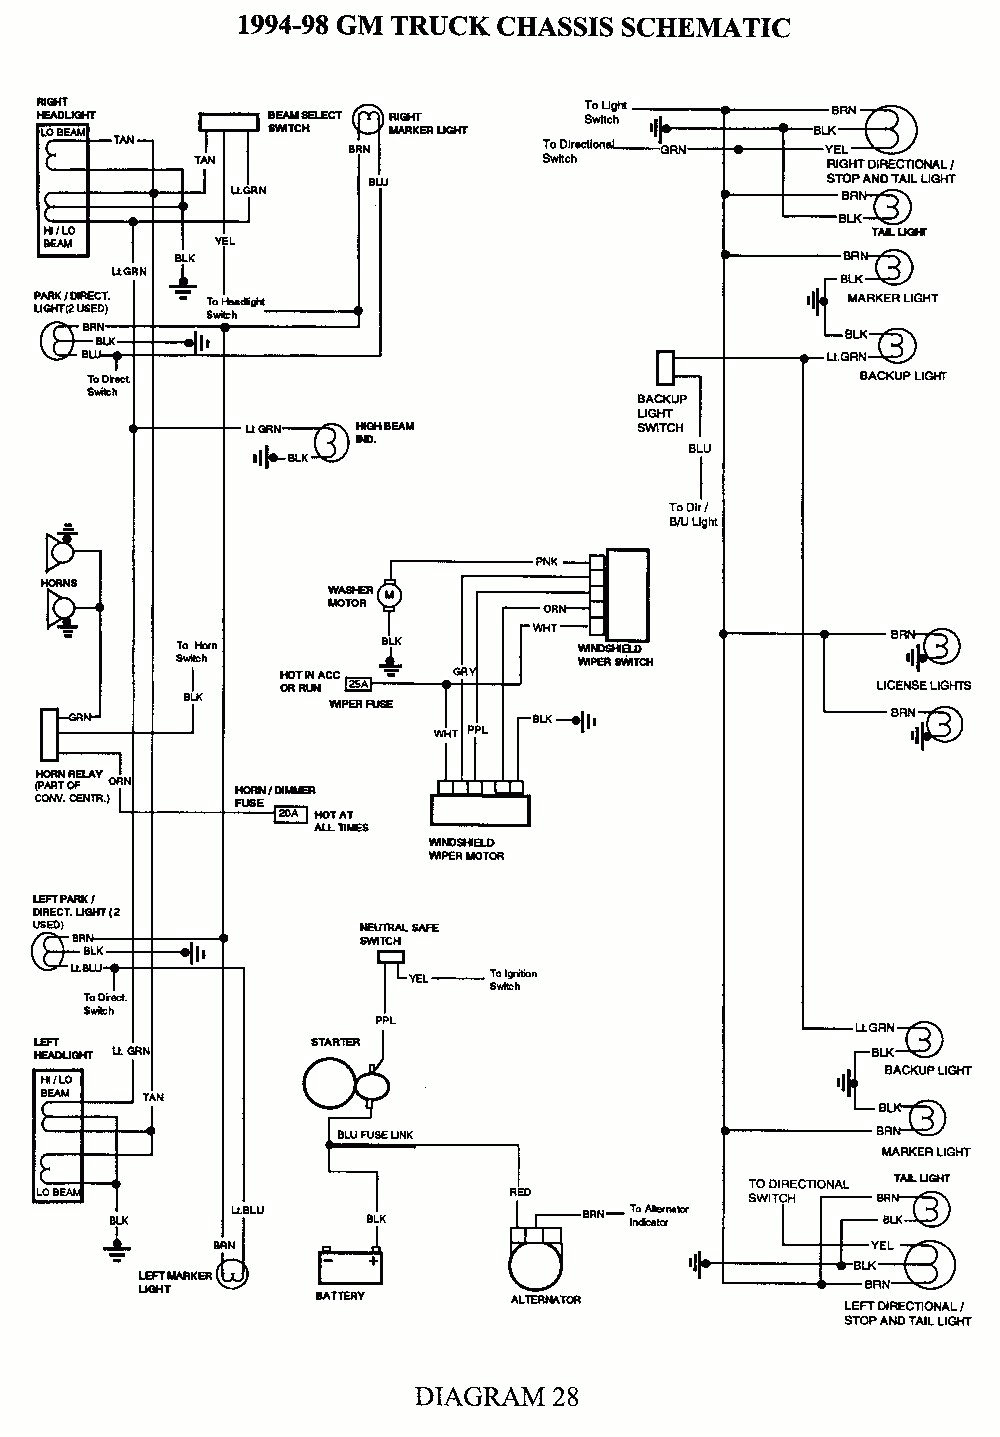 wiring diagram 2000 chevy truck fuel pump get free image about wiring diagram for 1999 chevy silverado 1500 free download wiring